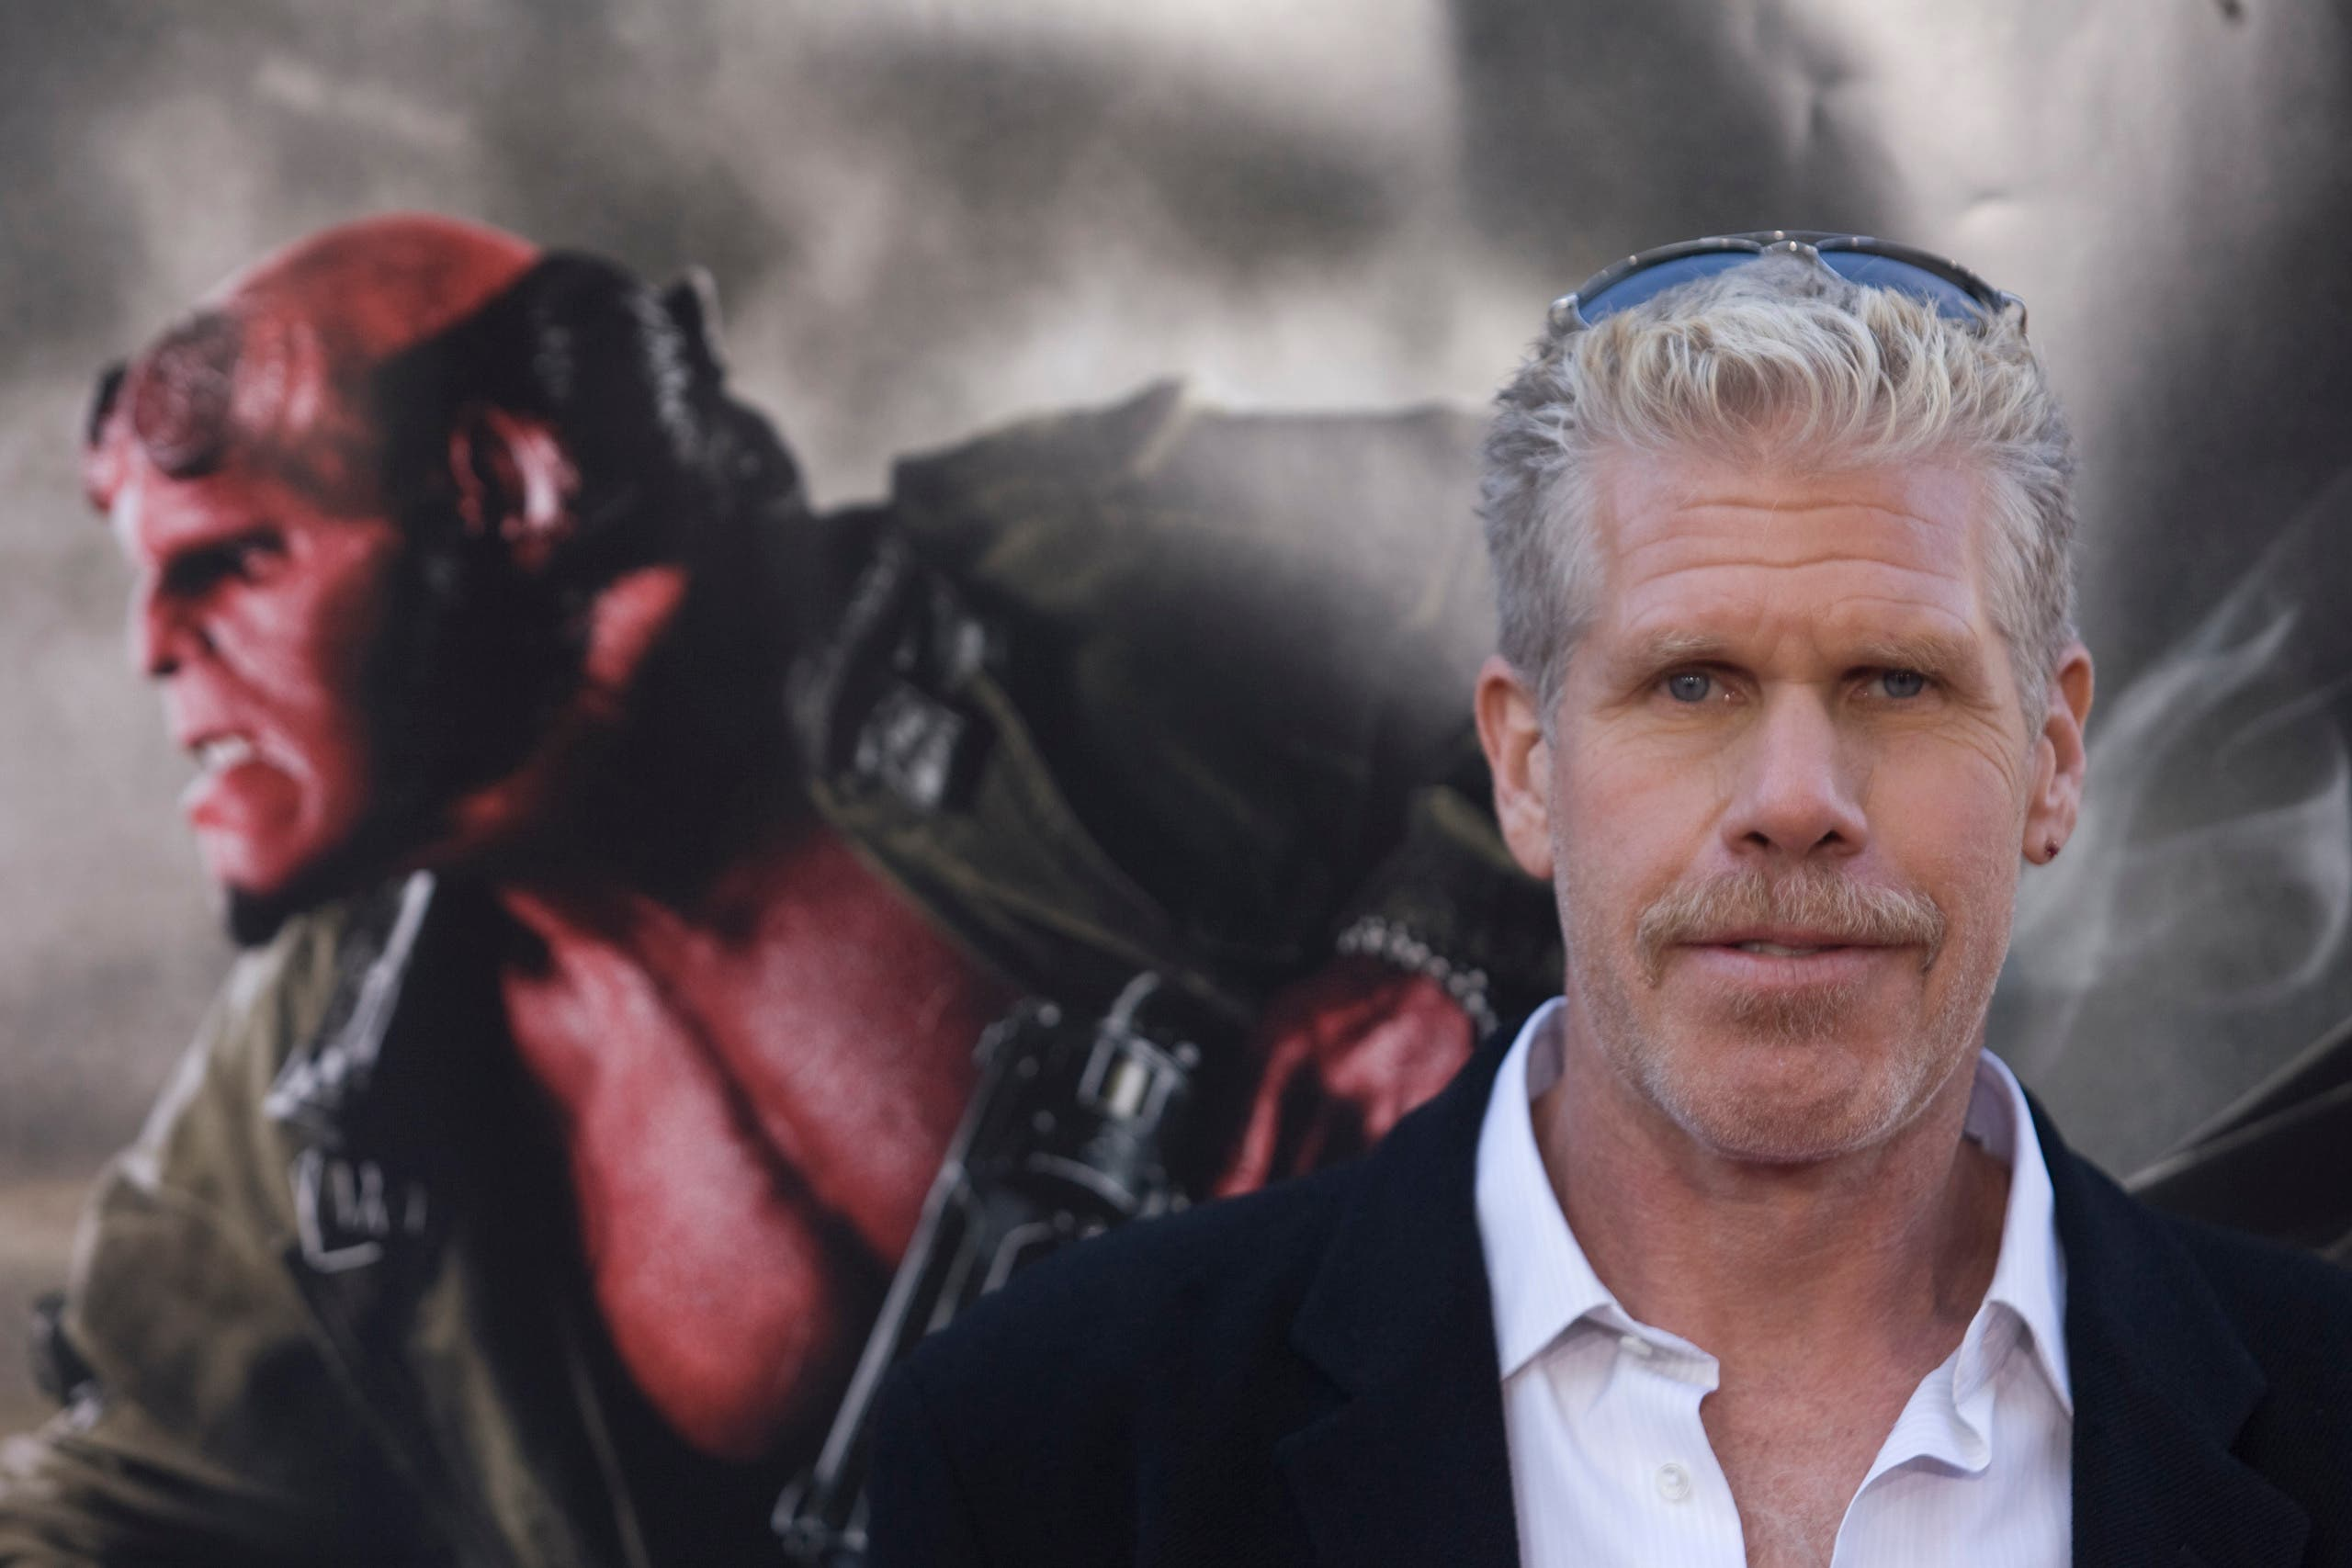 Actor Ron Perlman poses for photographers during the premiere of the movie Hellboy II The Golden Army in Los Angeles, California, June 28, 2008. (Reuters)